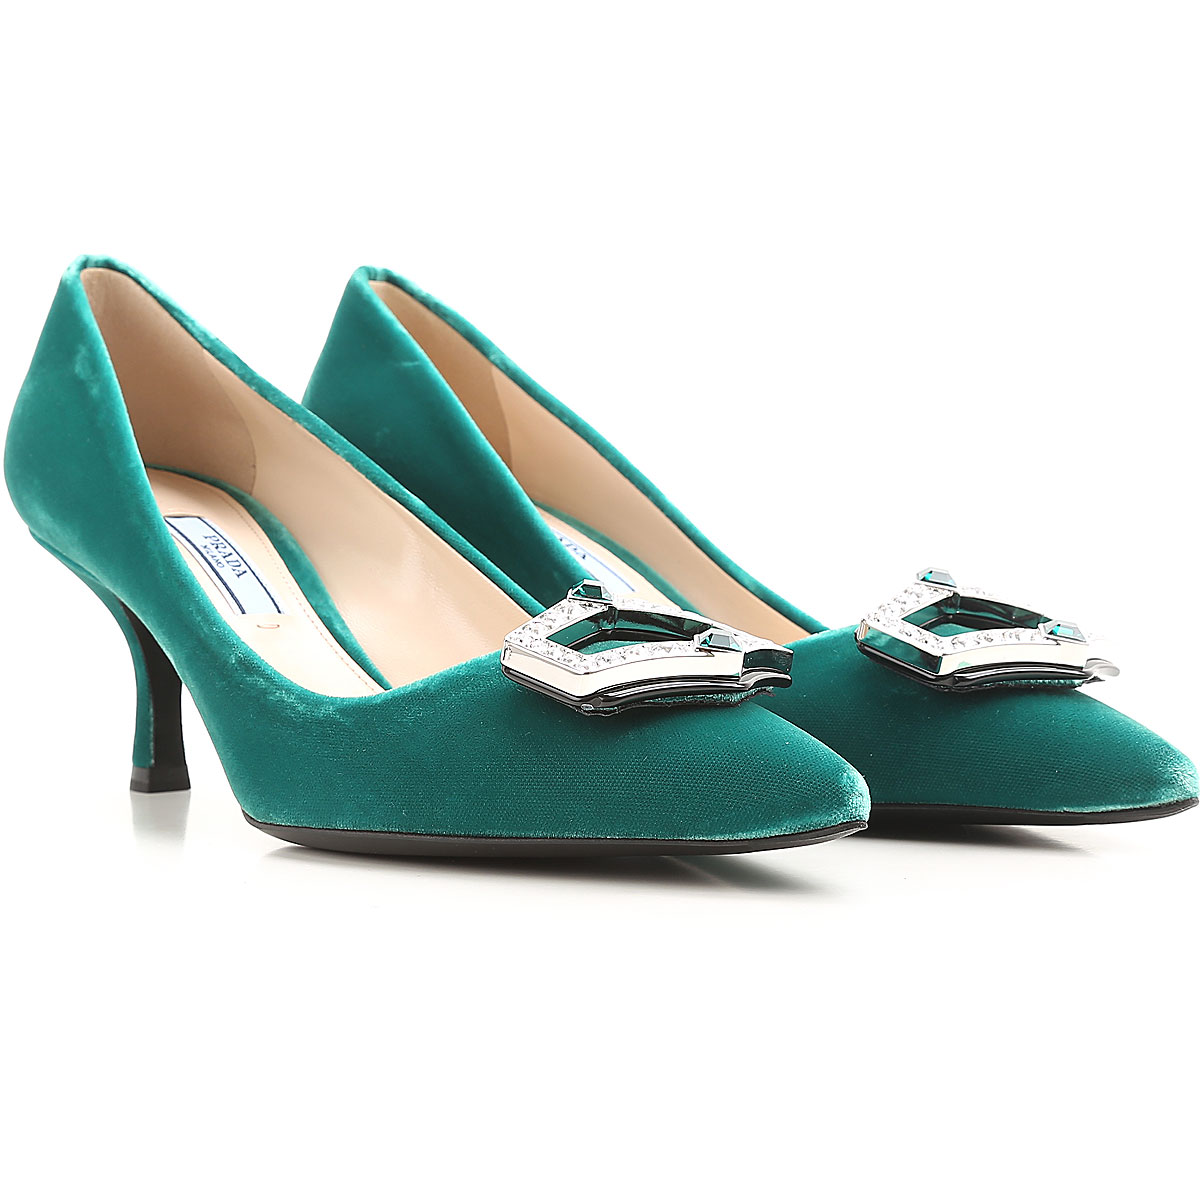 Prada Pumps & High Heels for Women in Outlet Larch Green USA - GOOFASH